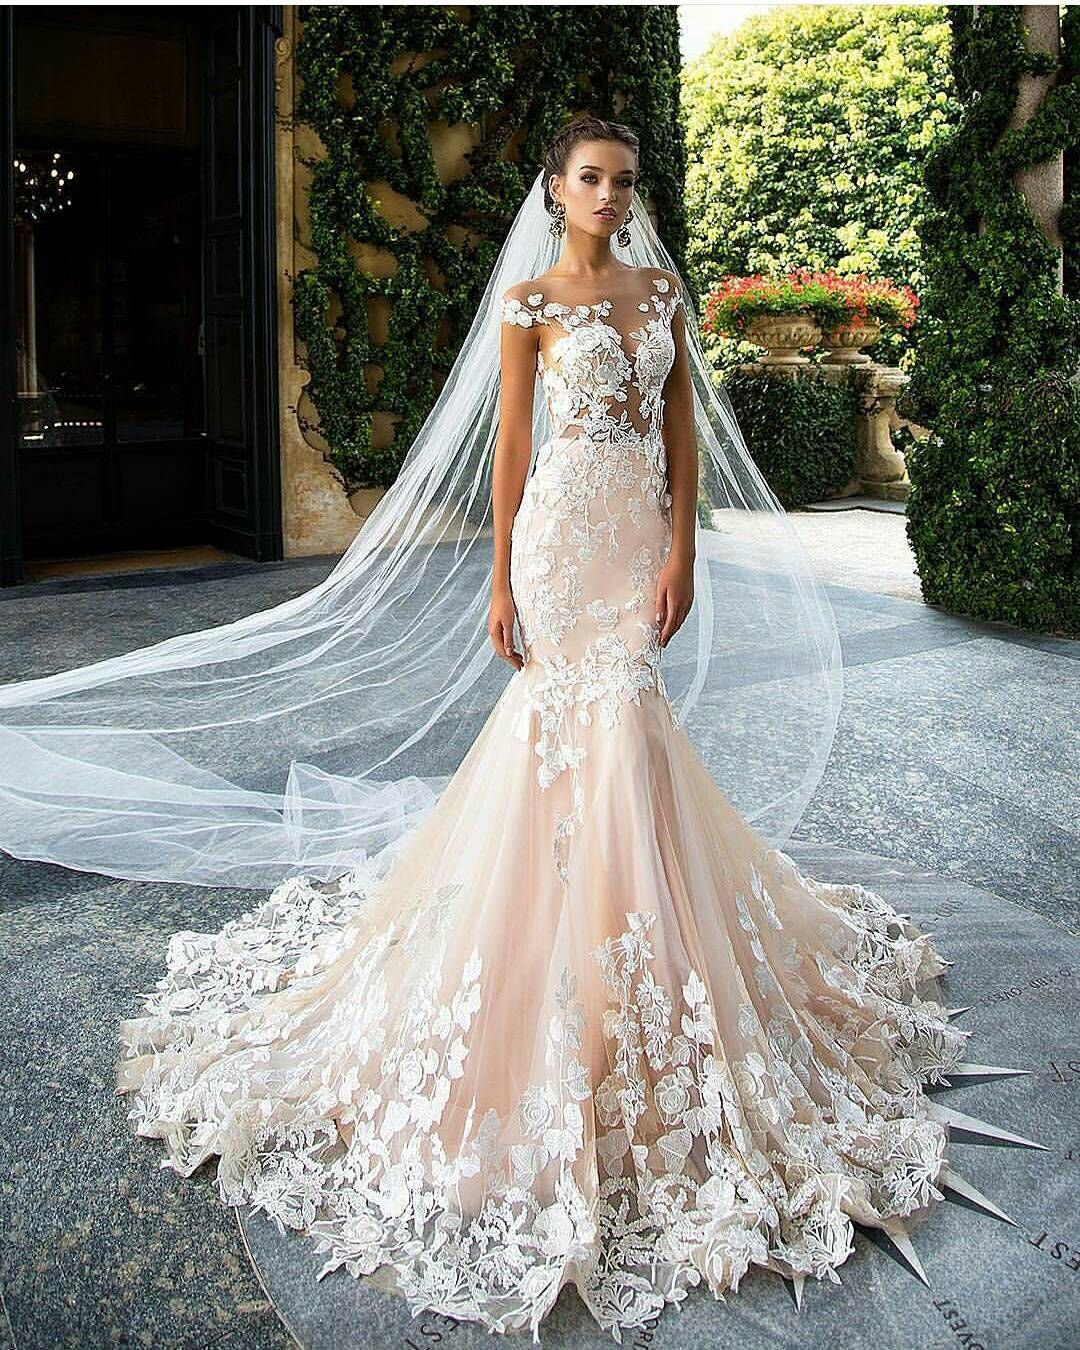 Pin by Aly Young on wedding dresses | Pinterest | Wedding dress ...